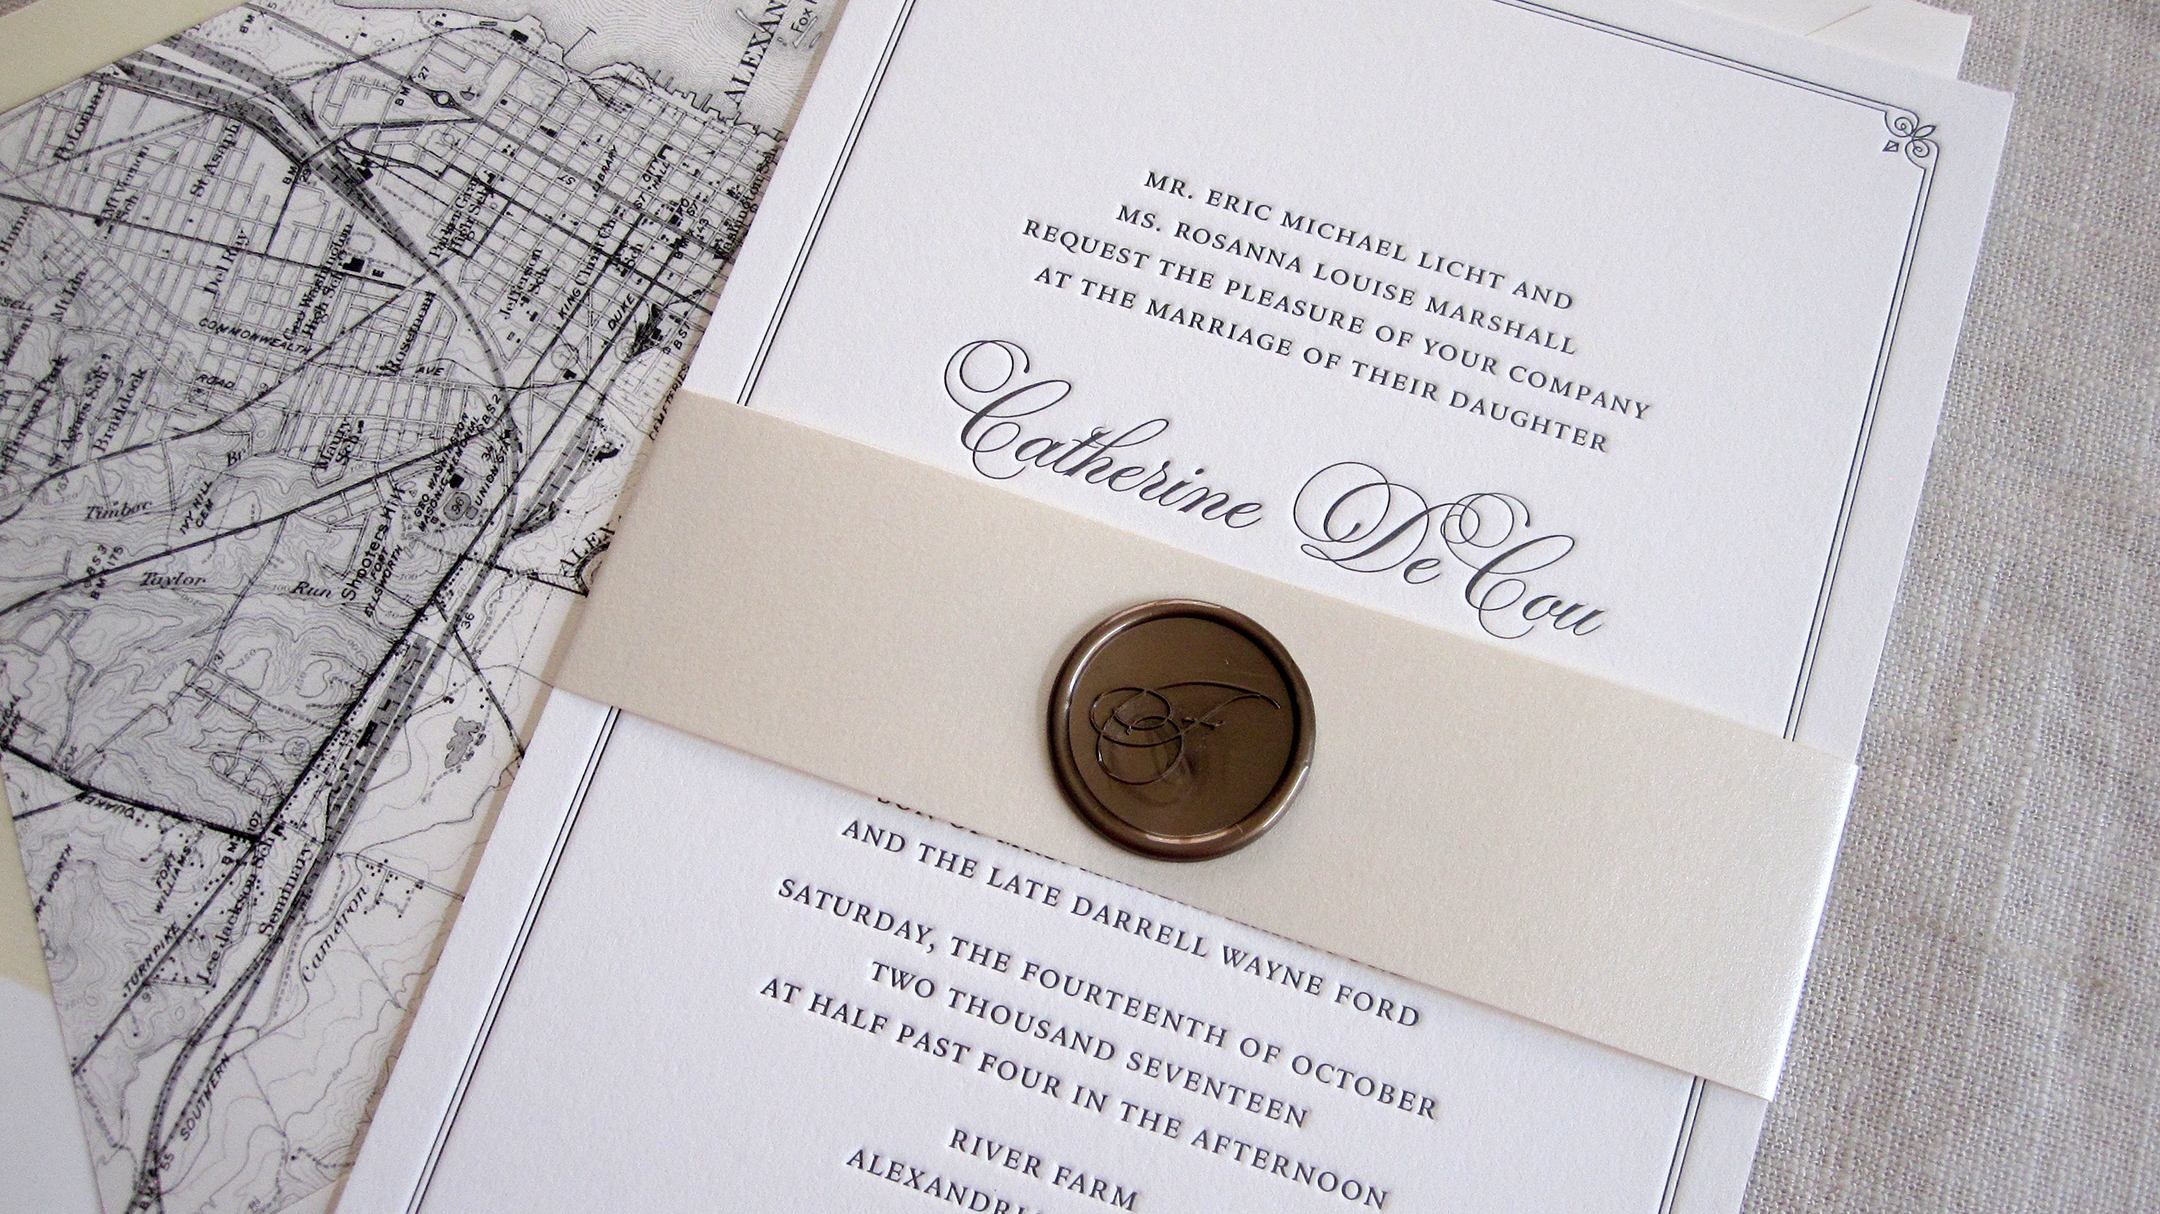 DC_wedding_invitations2.jpg